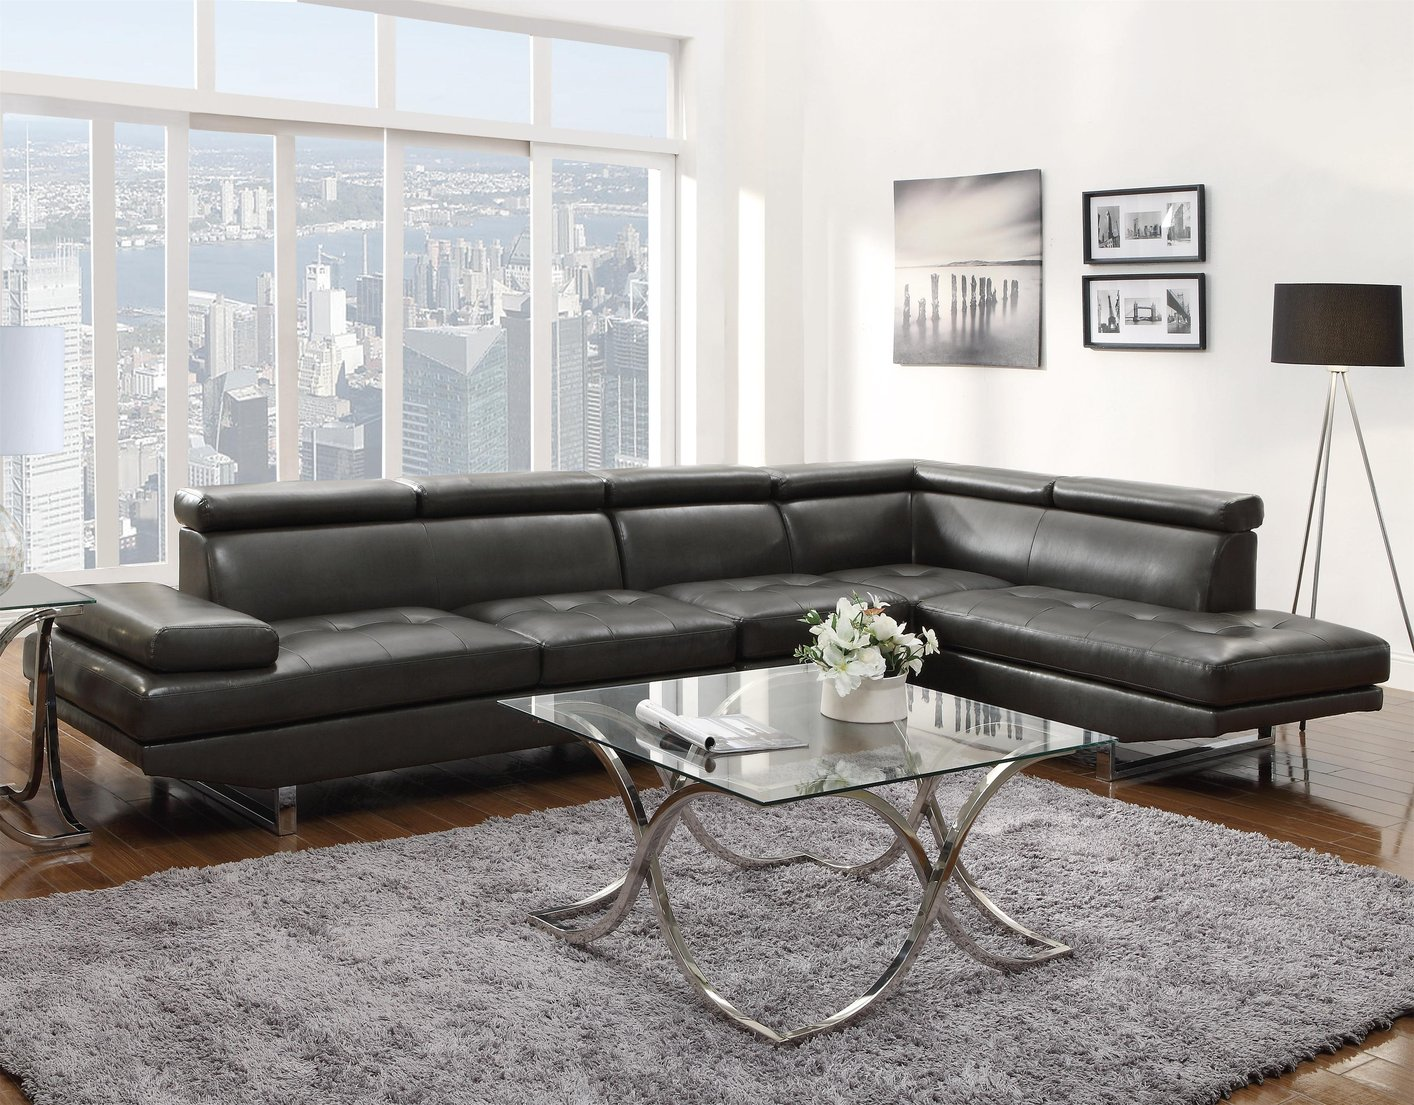 Kitchen Cabinets Outlet Stores Coaster 503029 Grey Leather Sectional Sofa Steal A Sofa